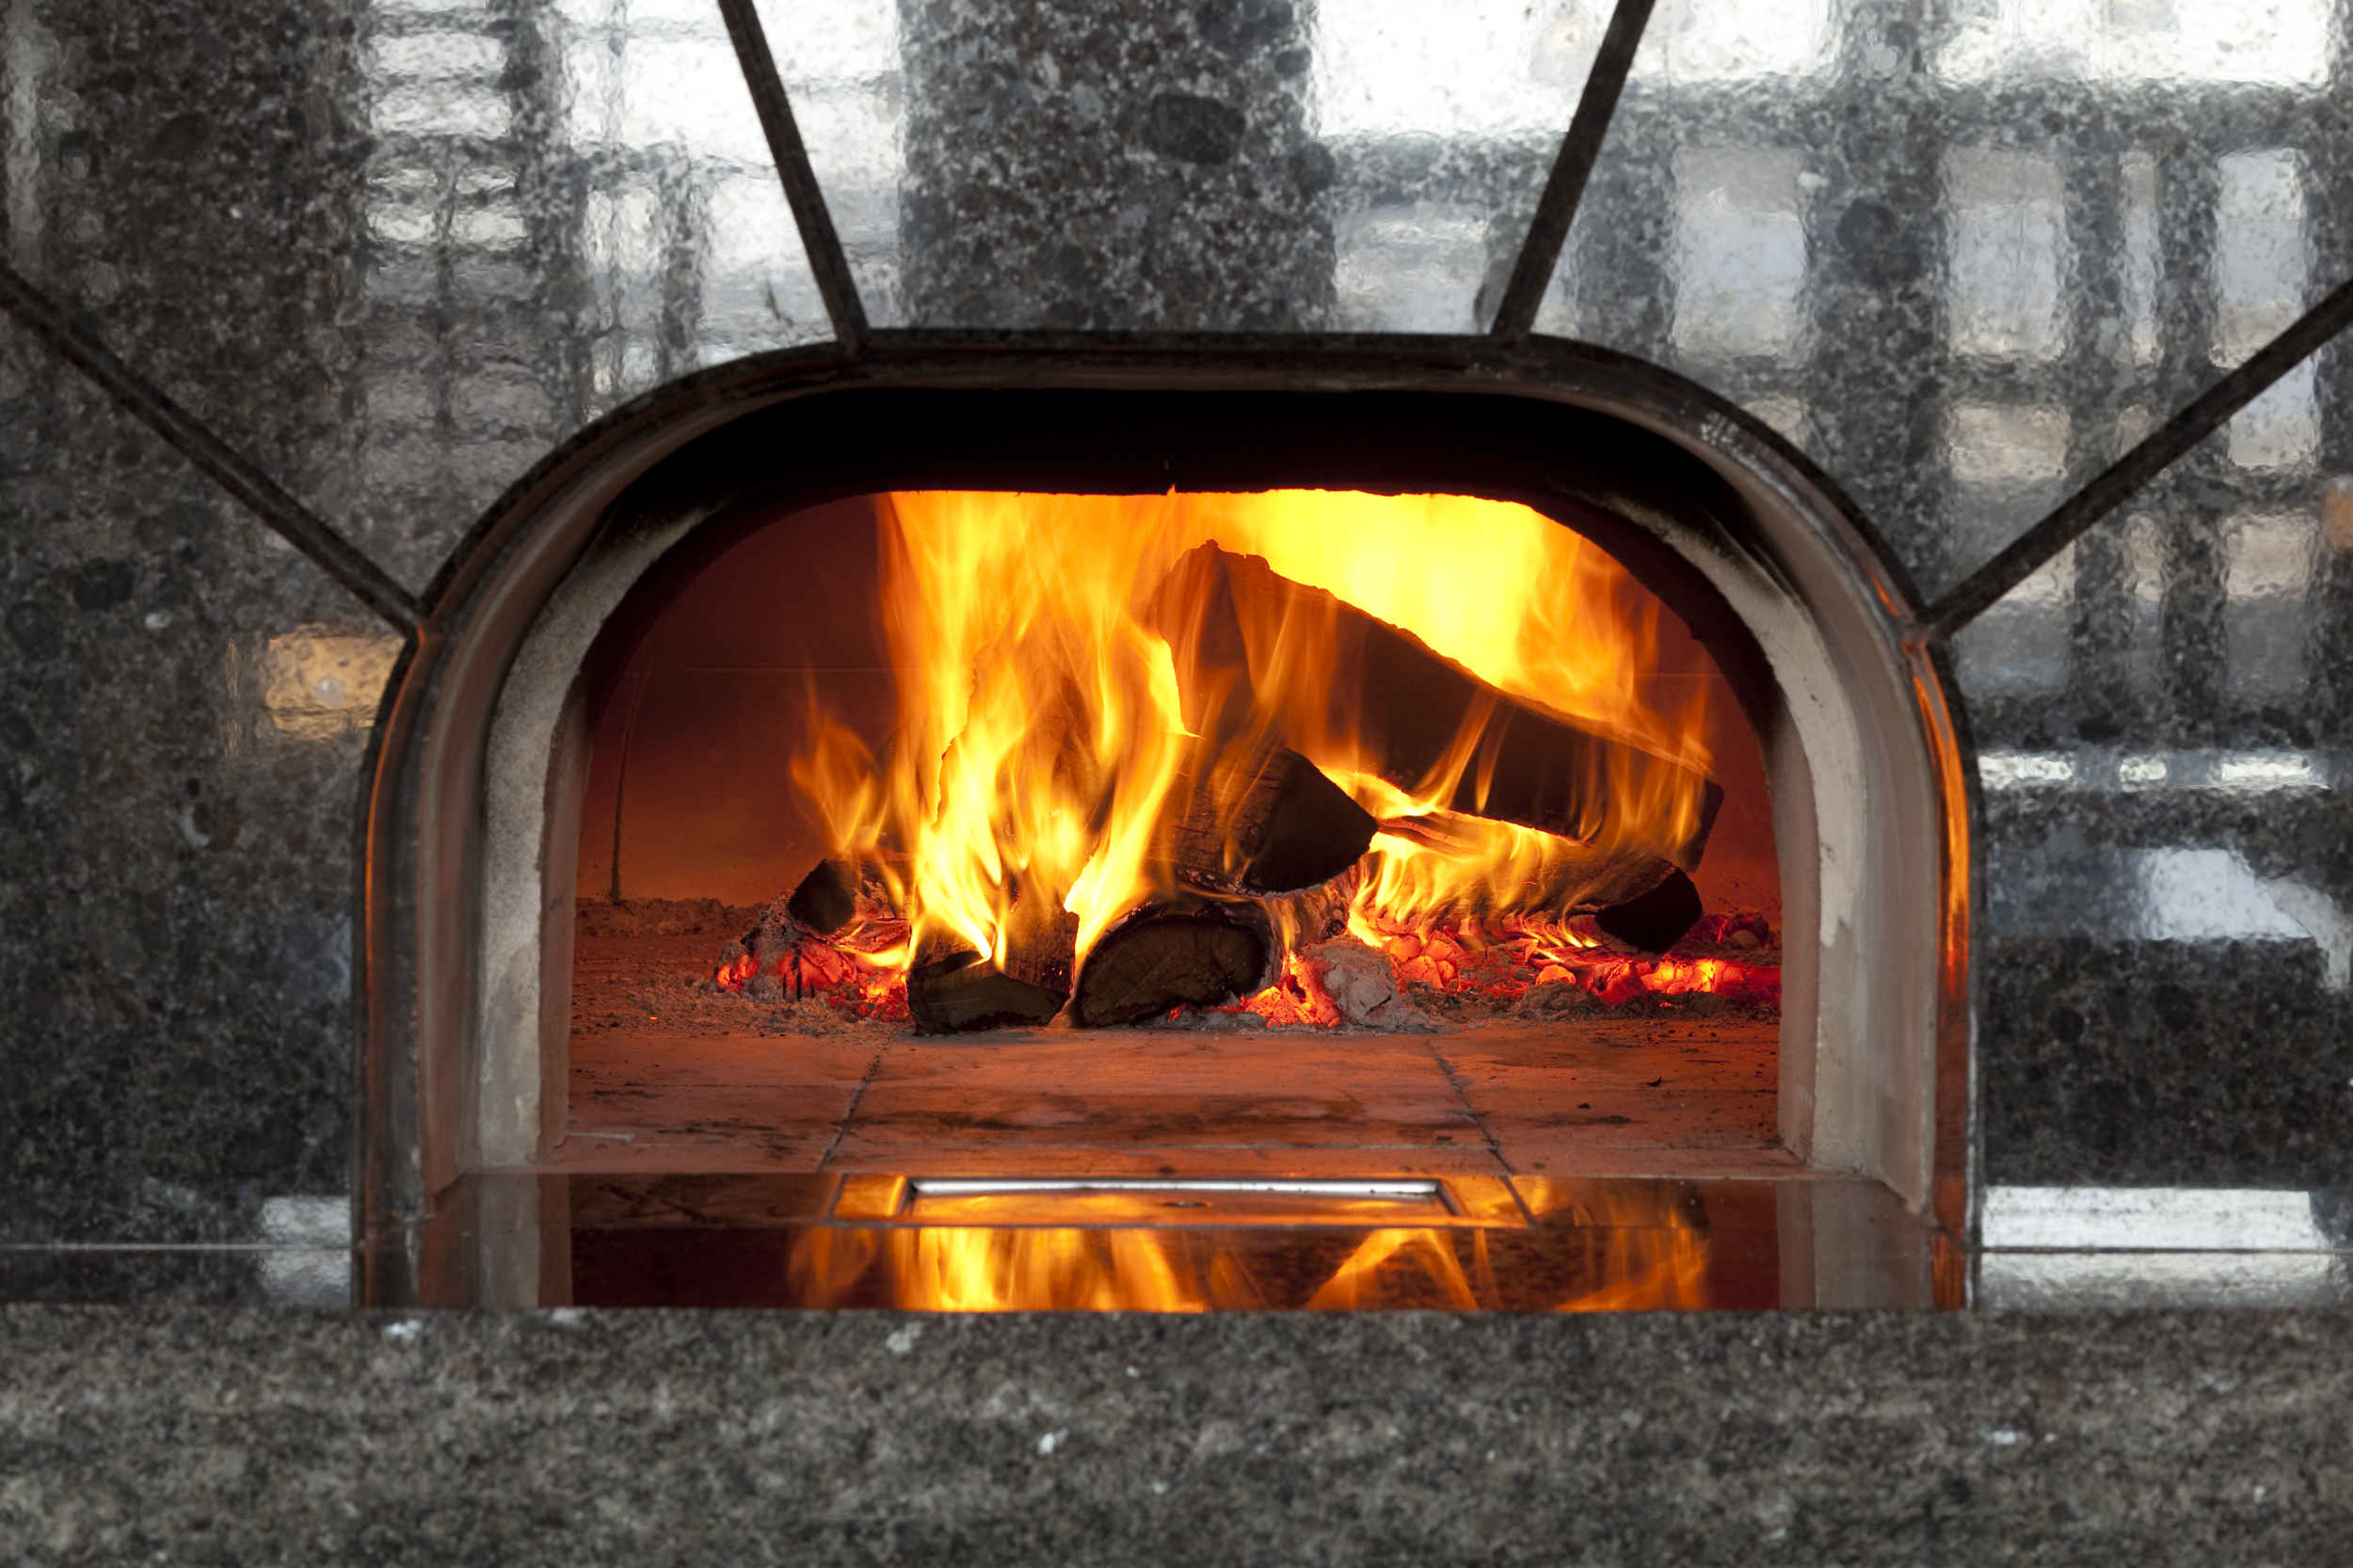 Wood-fired ovens for home and restaurants